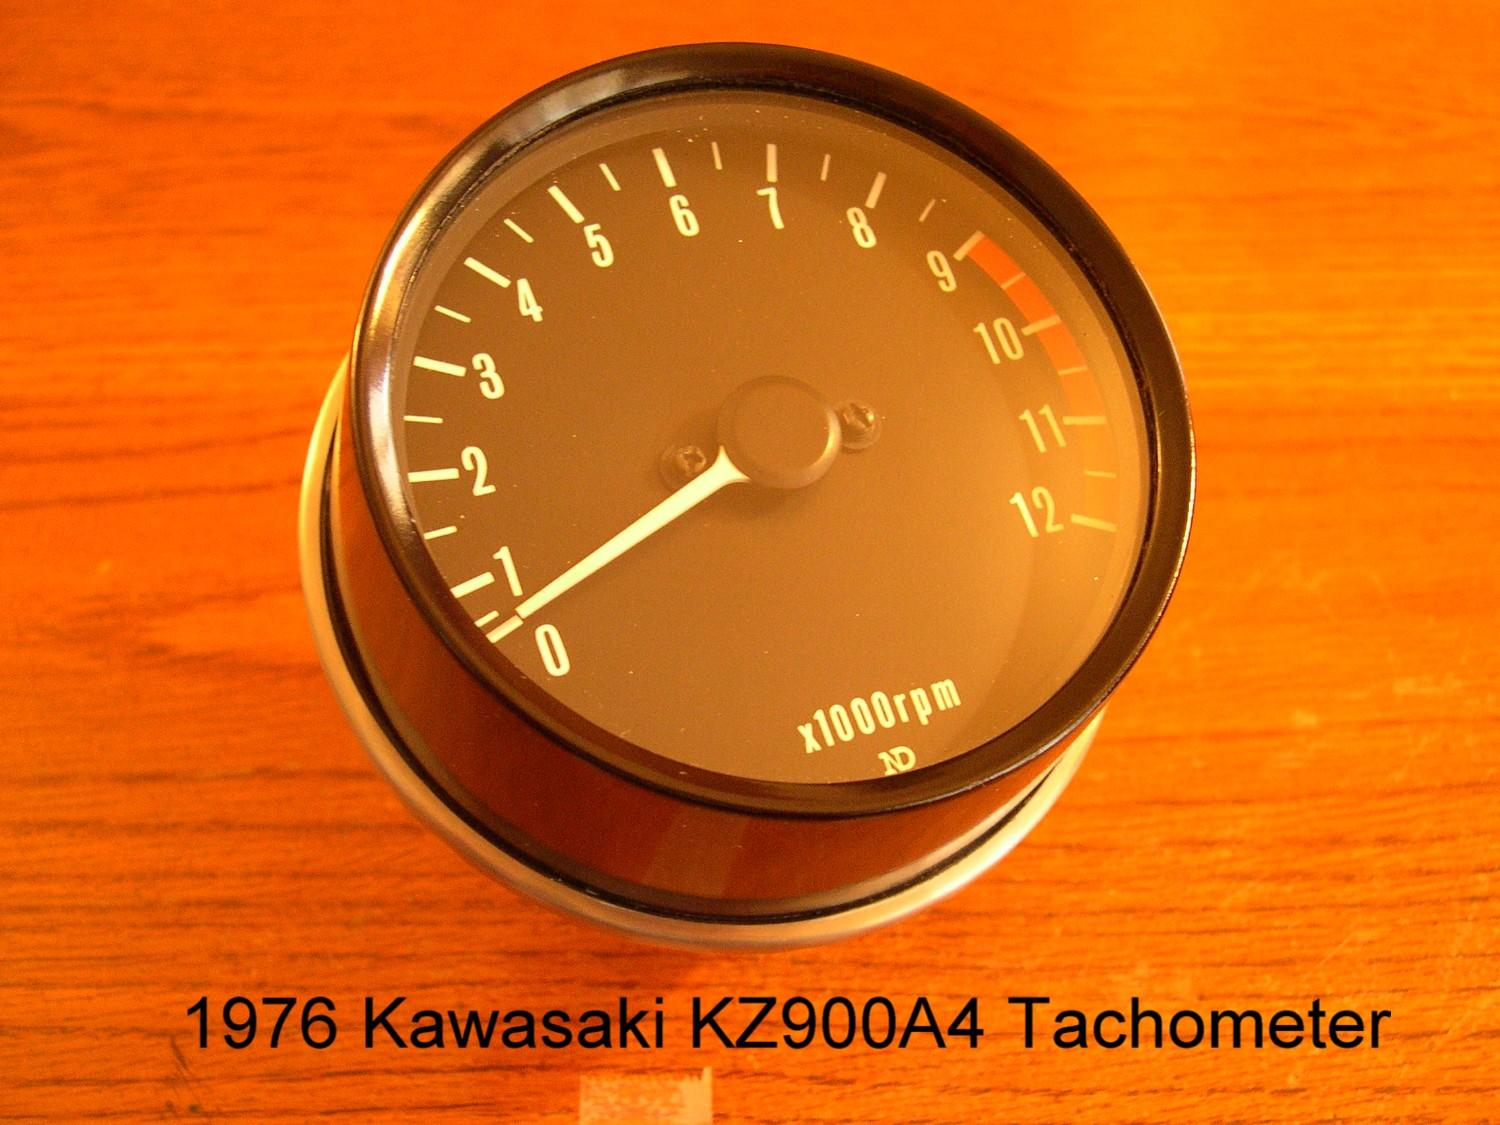 The Z Zone Kawasaki Kt250 Wiring Diagram 1976 Tachowith Arrival Of Z900 A4 Dropped Brake Light Warning In Tachometer Redline Remains At 9000rpm